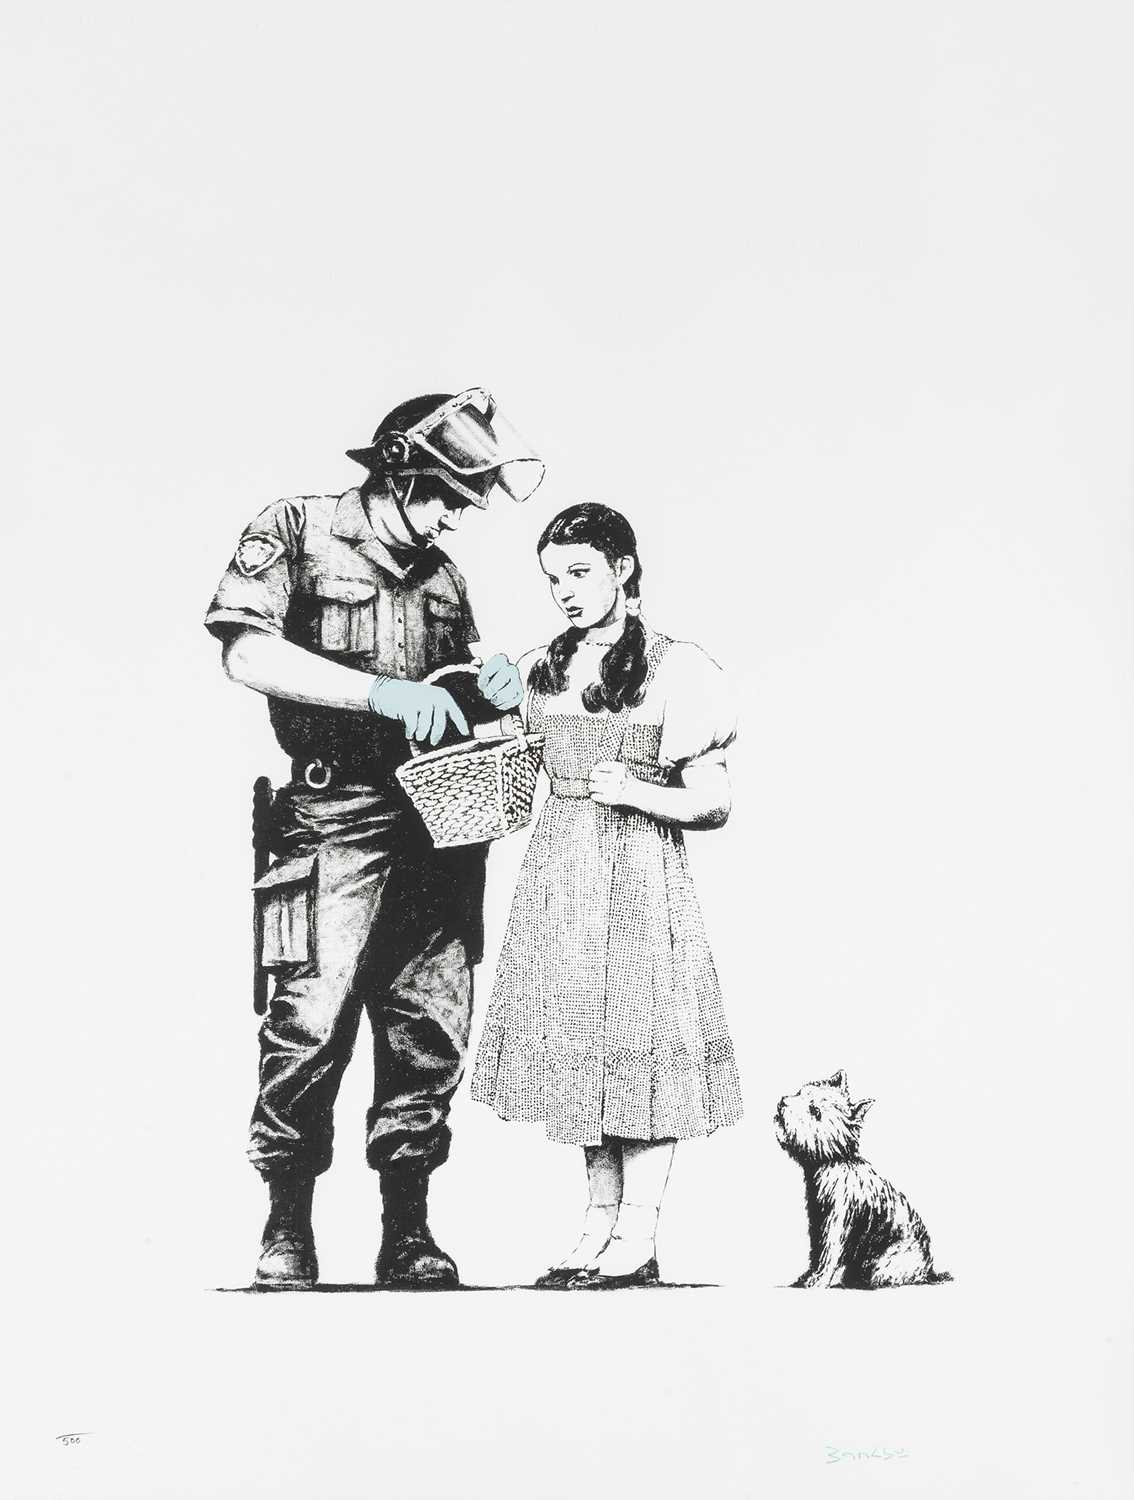 Lot 79-Banksy (British 1974-), 'Stop & Search', 2007